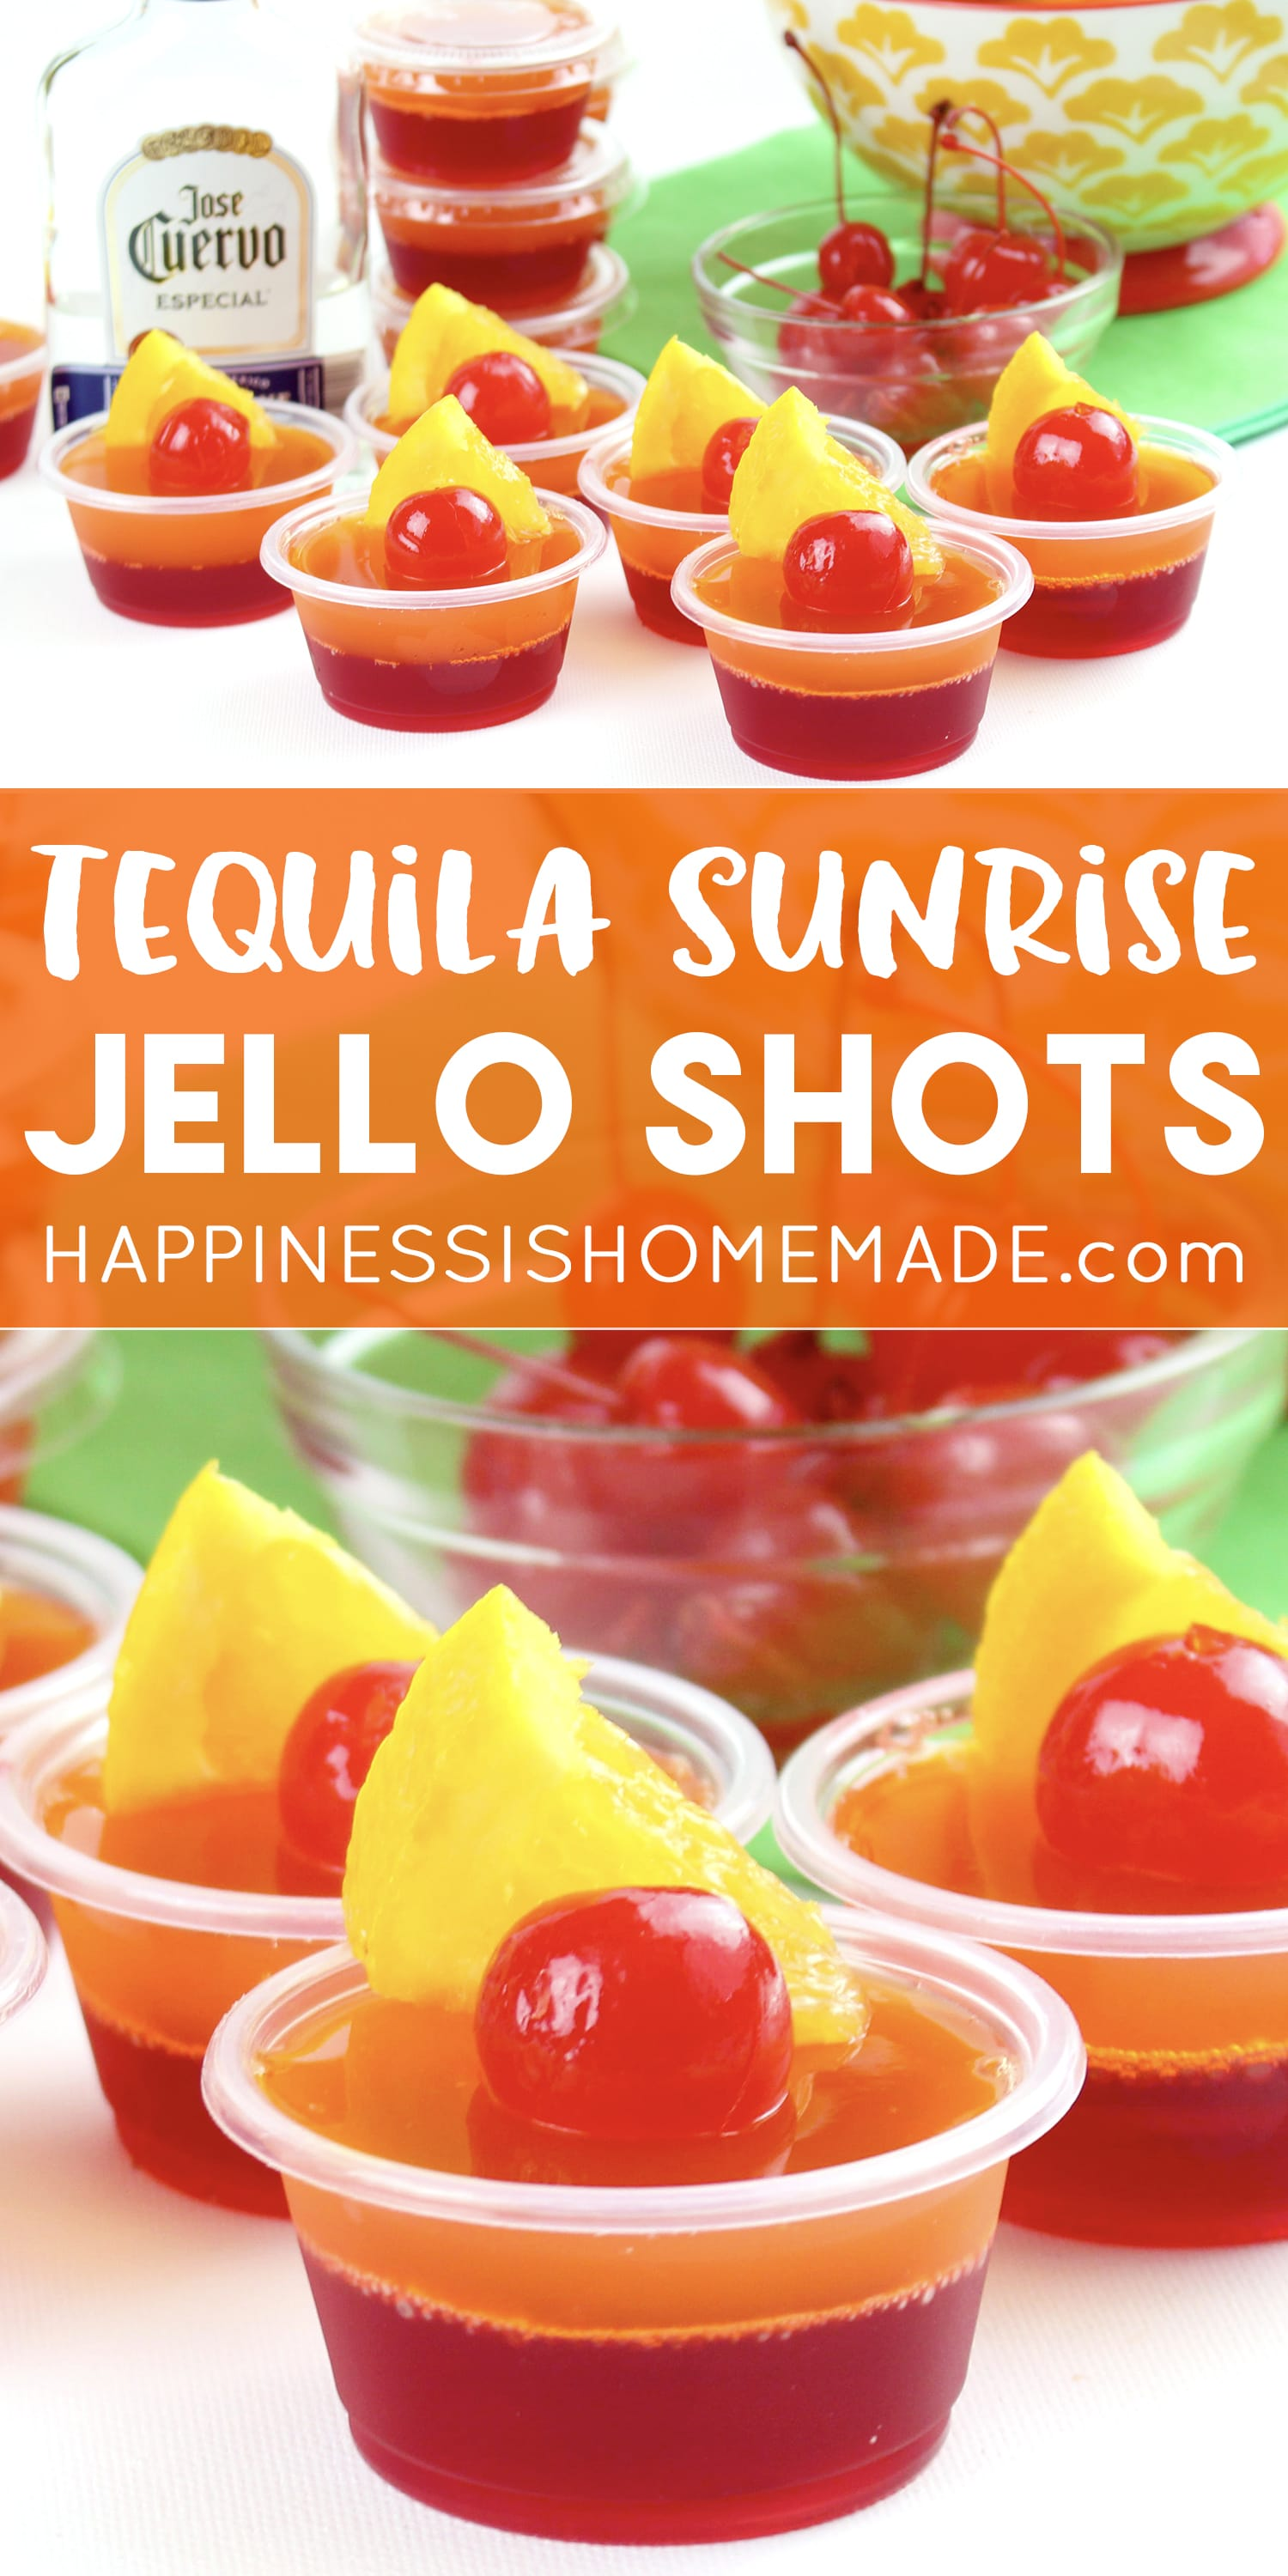 tequila sunrise Jello shots on white background with orange wedge and maraschino cherry garnish